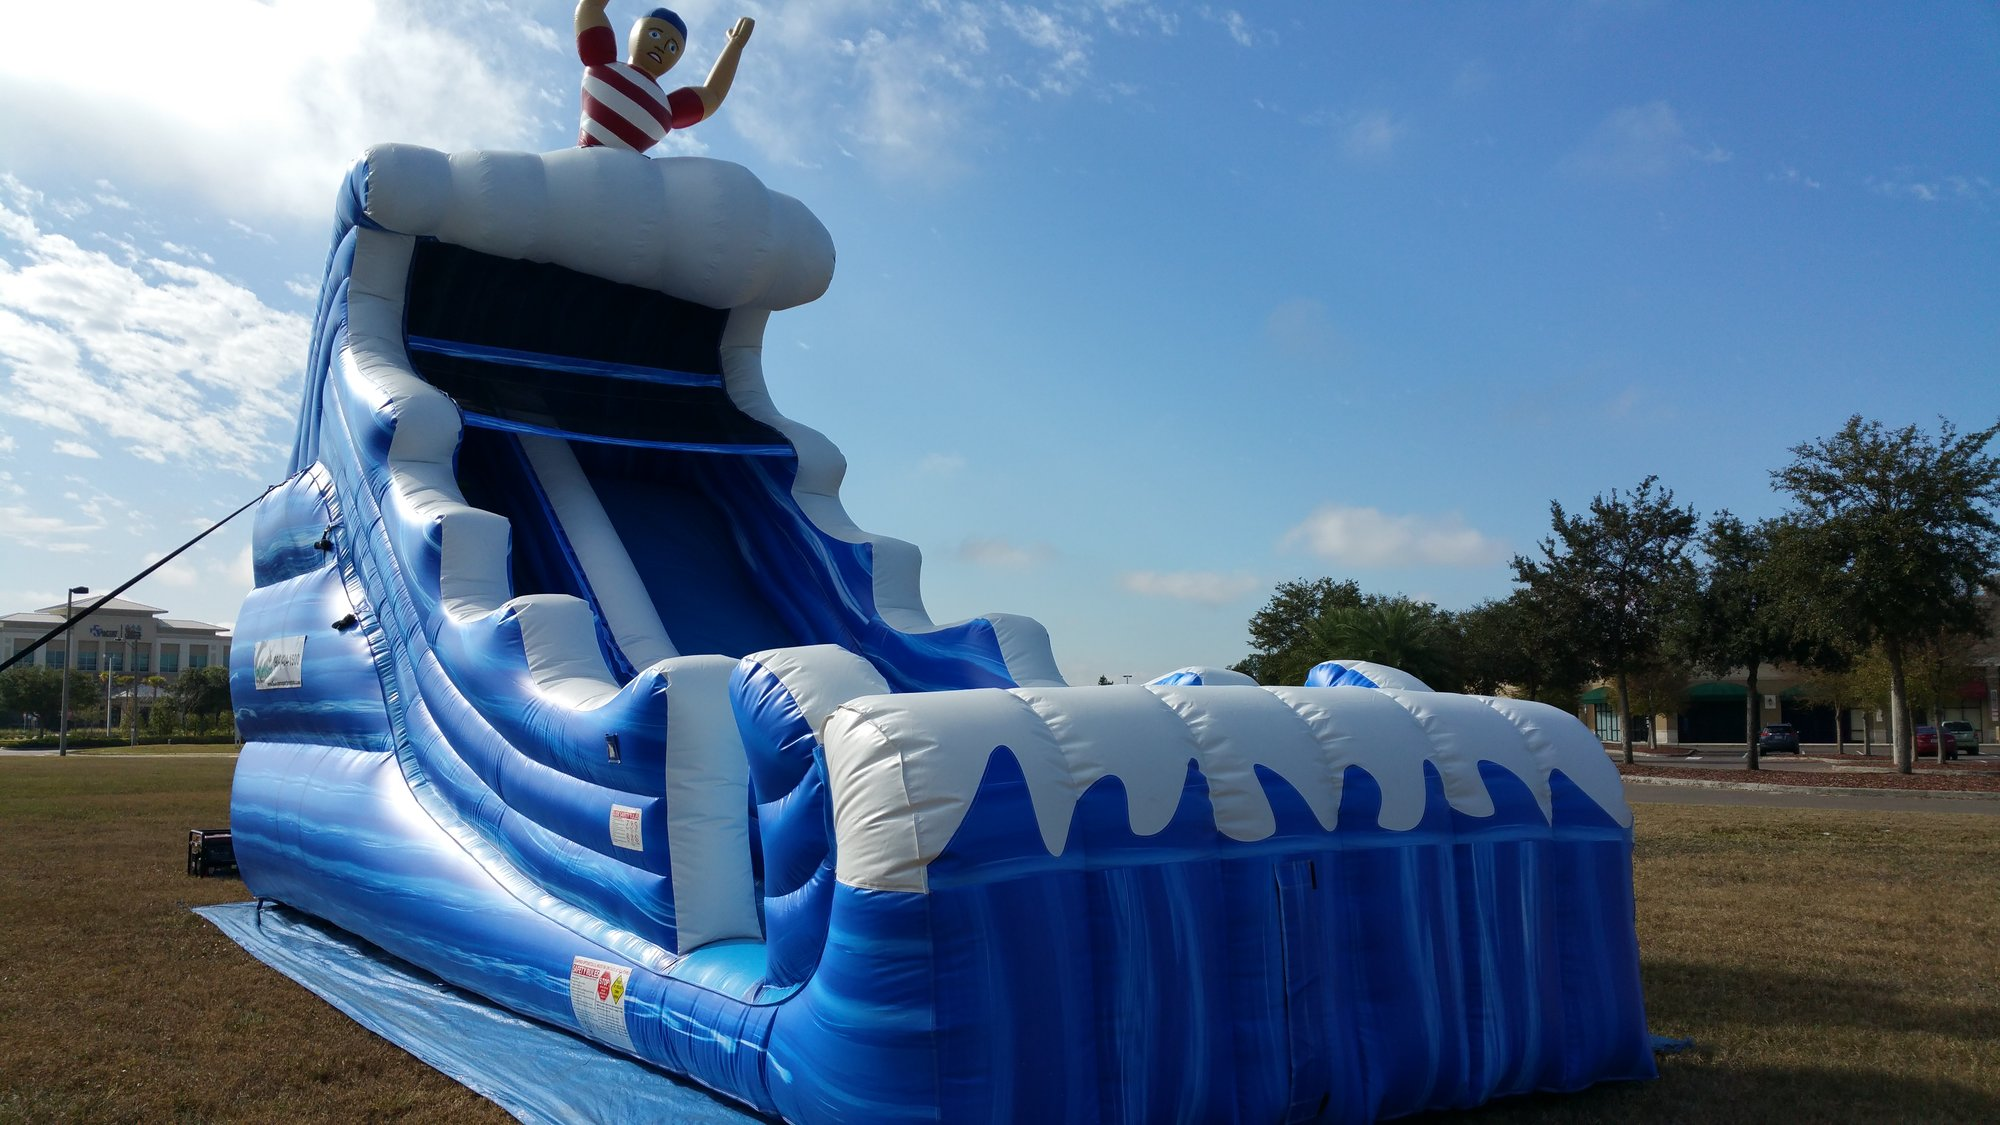 Tsunami Slide  22'  Bounce House Waterslide WET or DRY image - Jacksonville, FL